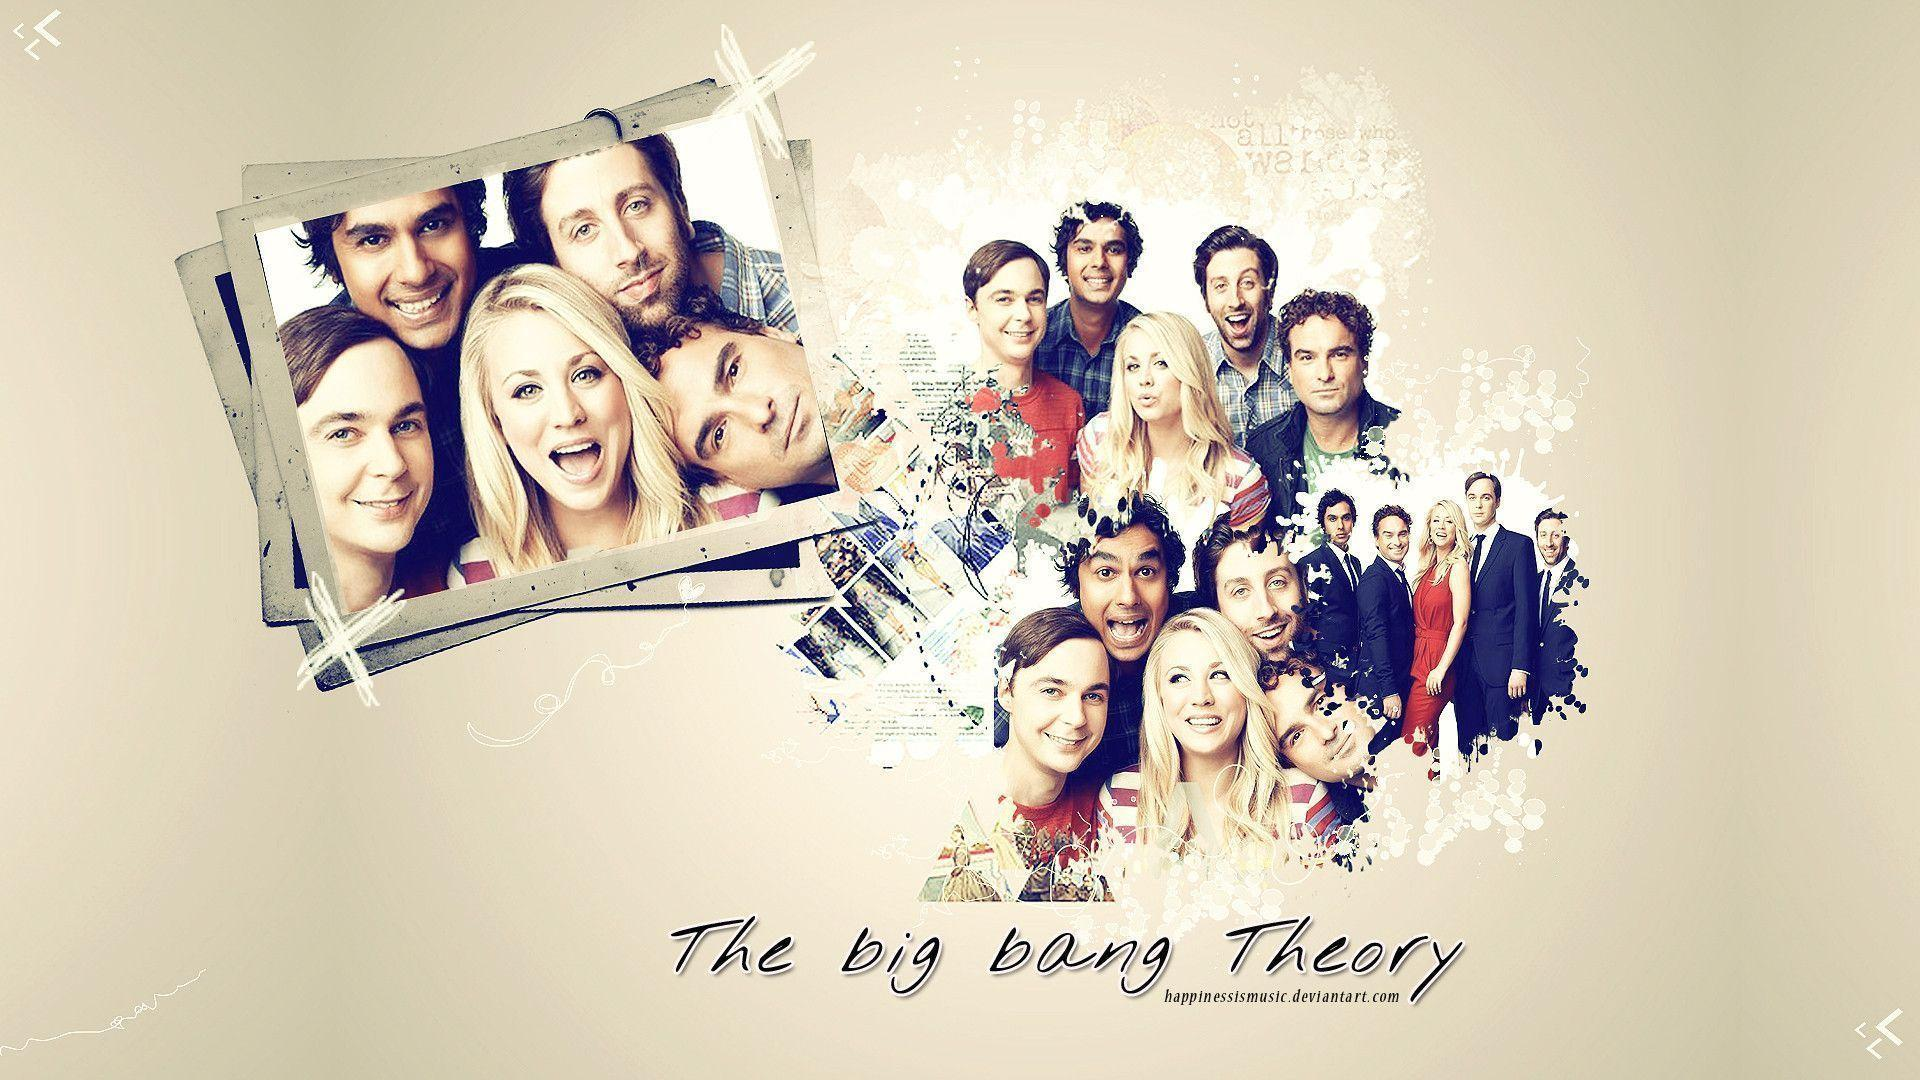 The big bang theory wallpapers 7 by HappinessIsMusic